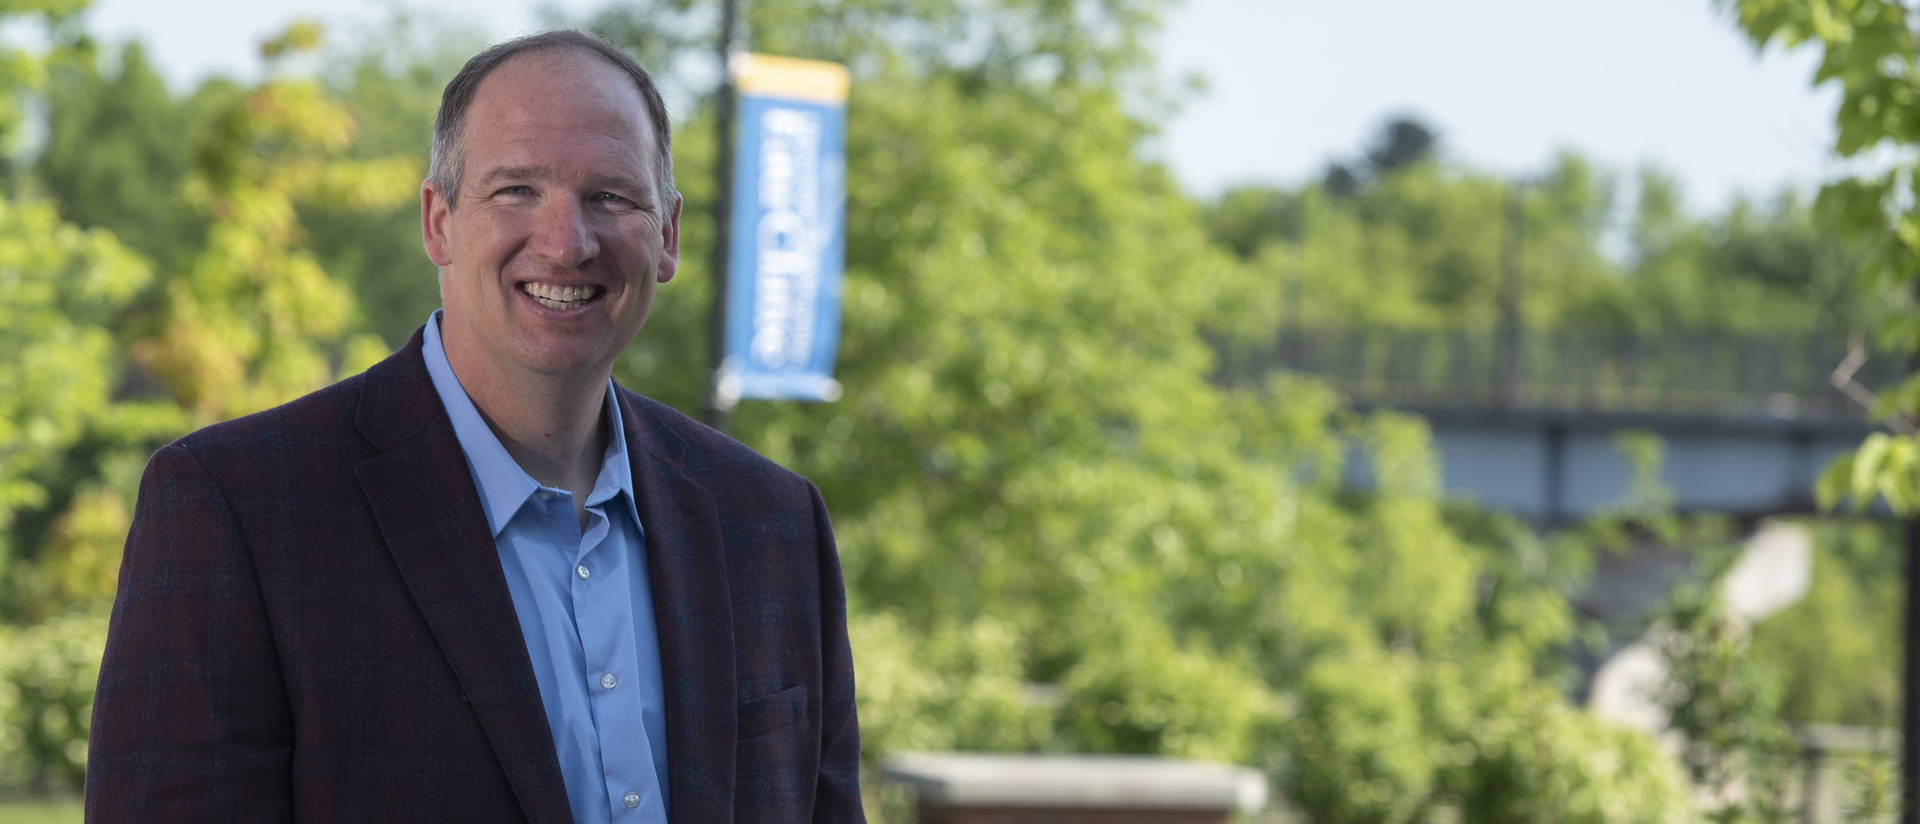 As program coordinator for the Menard Center for Constitutional Studies, Phil Rechek will help promote research, education and community outreach on matters related to the U.S. Constitution.